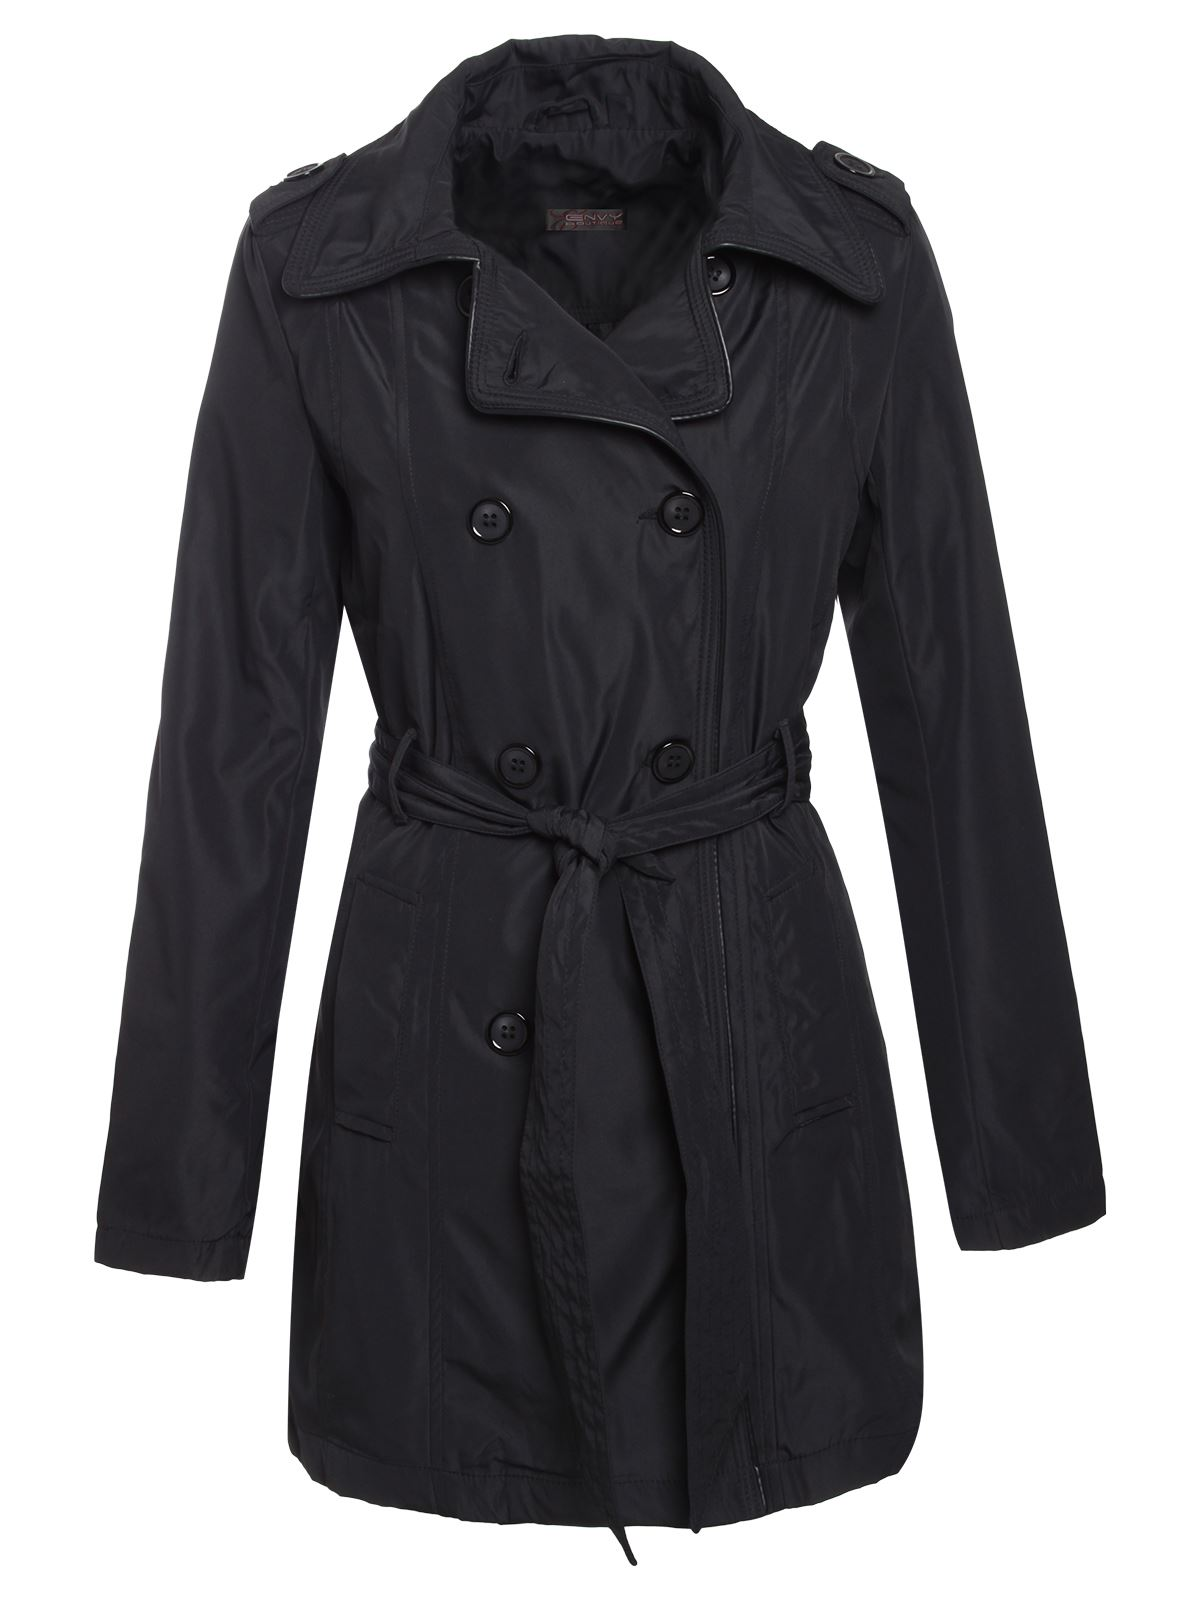 Brave-Soul-Ladies-Womens-Trench-Mac-Belted-Jacket-Double-Breasted-Coat